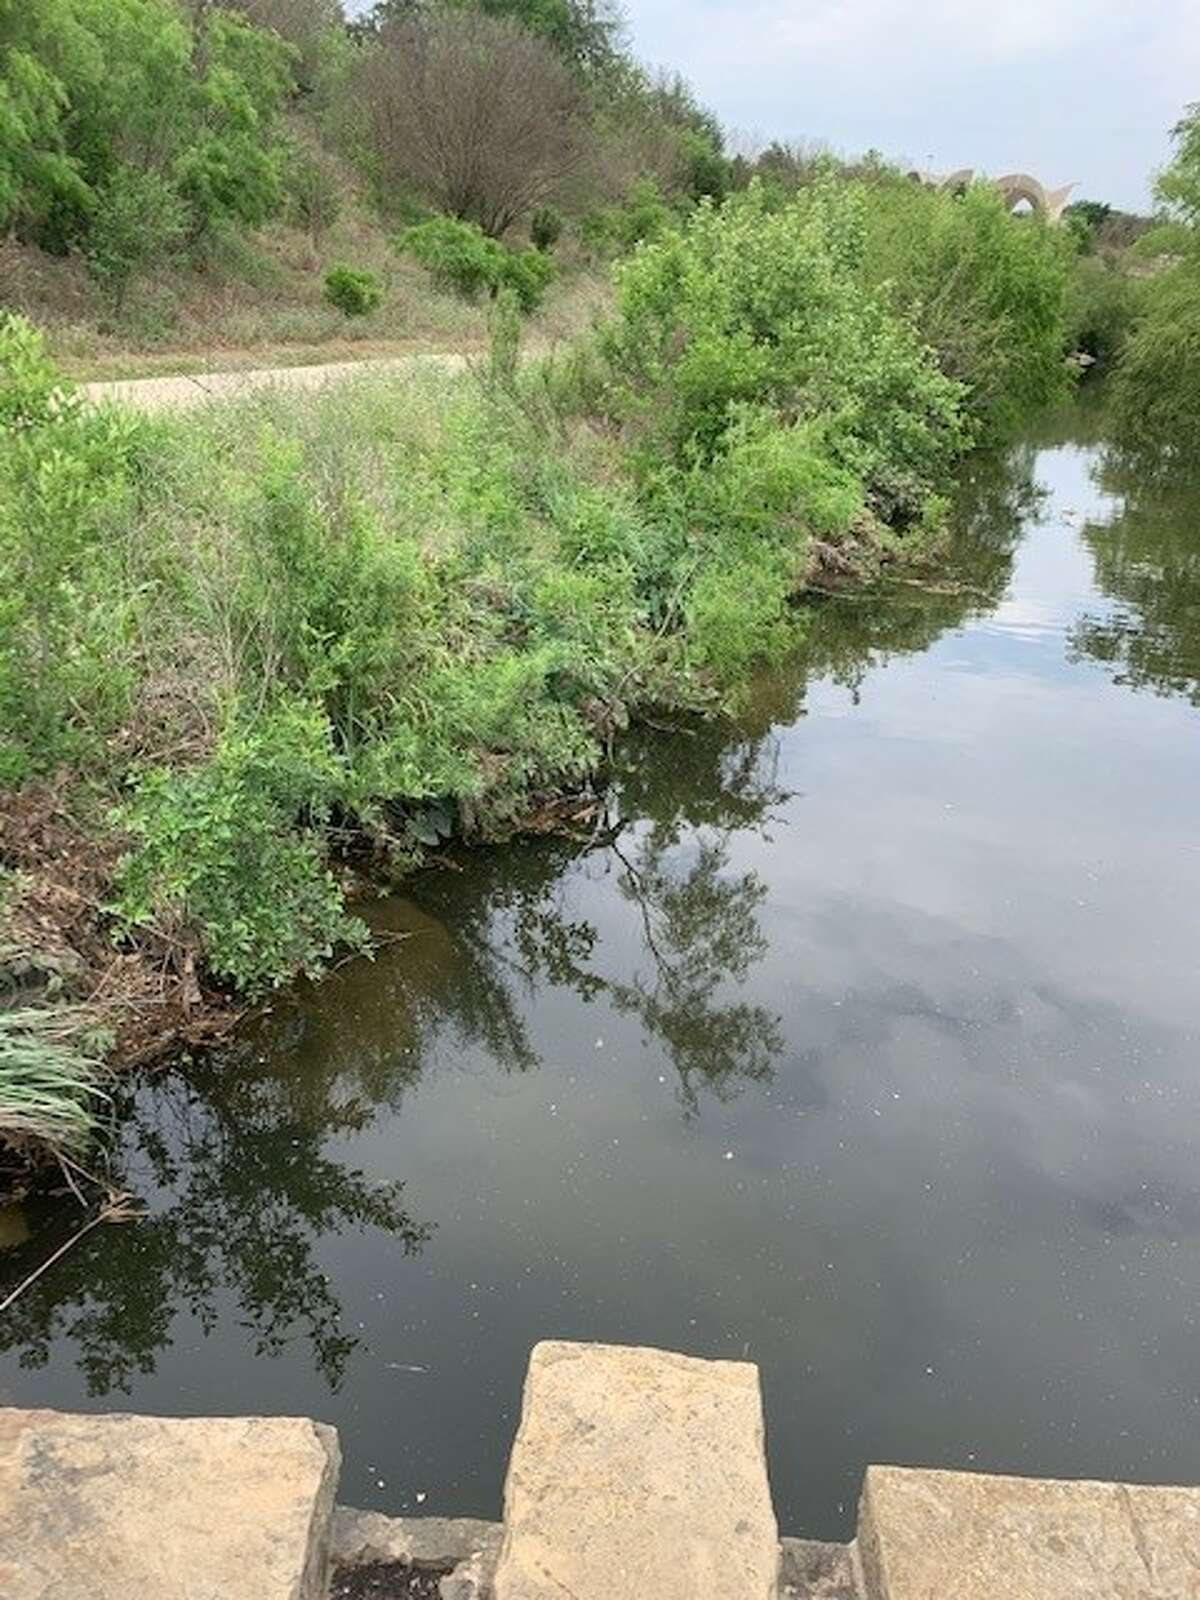 """""""We usually see big accumulations of litter along the Mission Reach after we have a rain event,"""" Kristen Hansen, Watershed and Park Operations Manager, told MySA.com. """"...Our teams are doing a great job addressing the issue, but we need the help of the community to put trash where it belongs."""""""